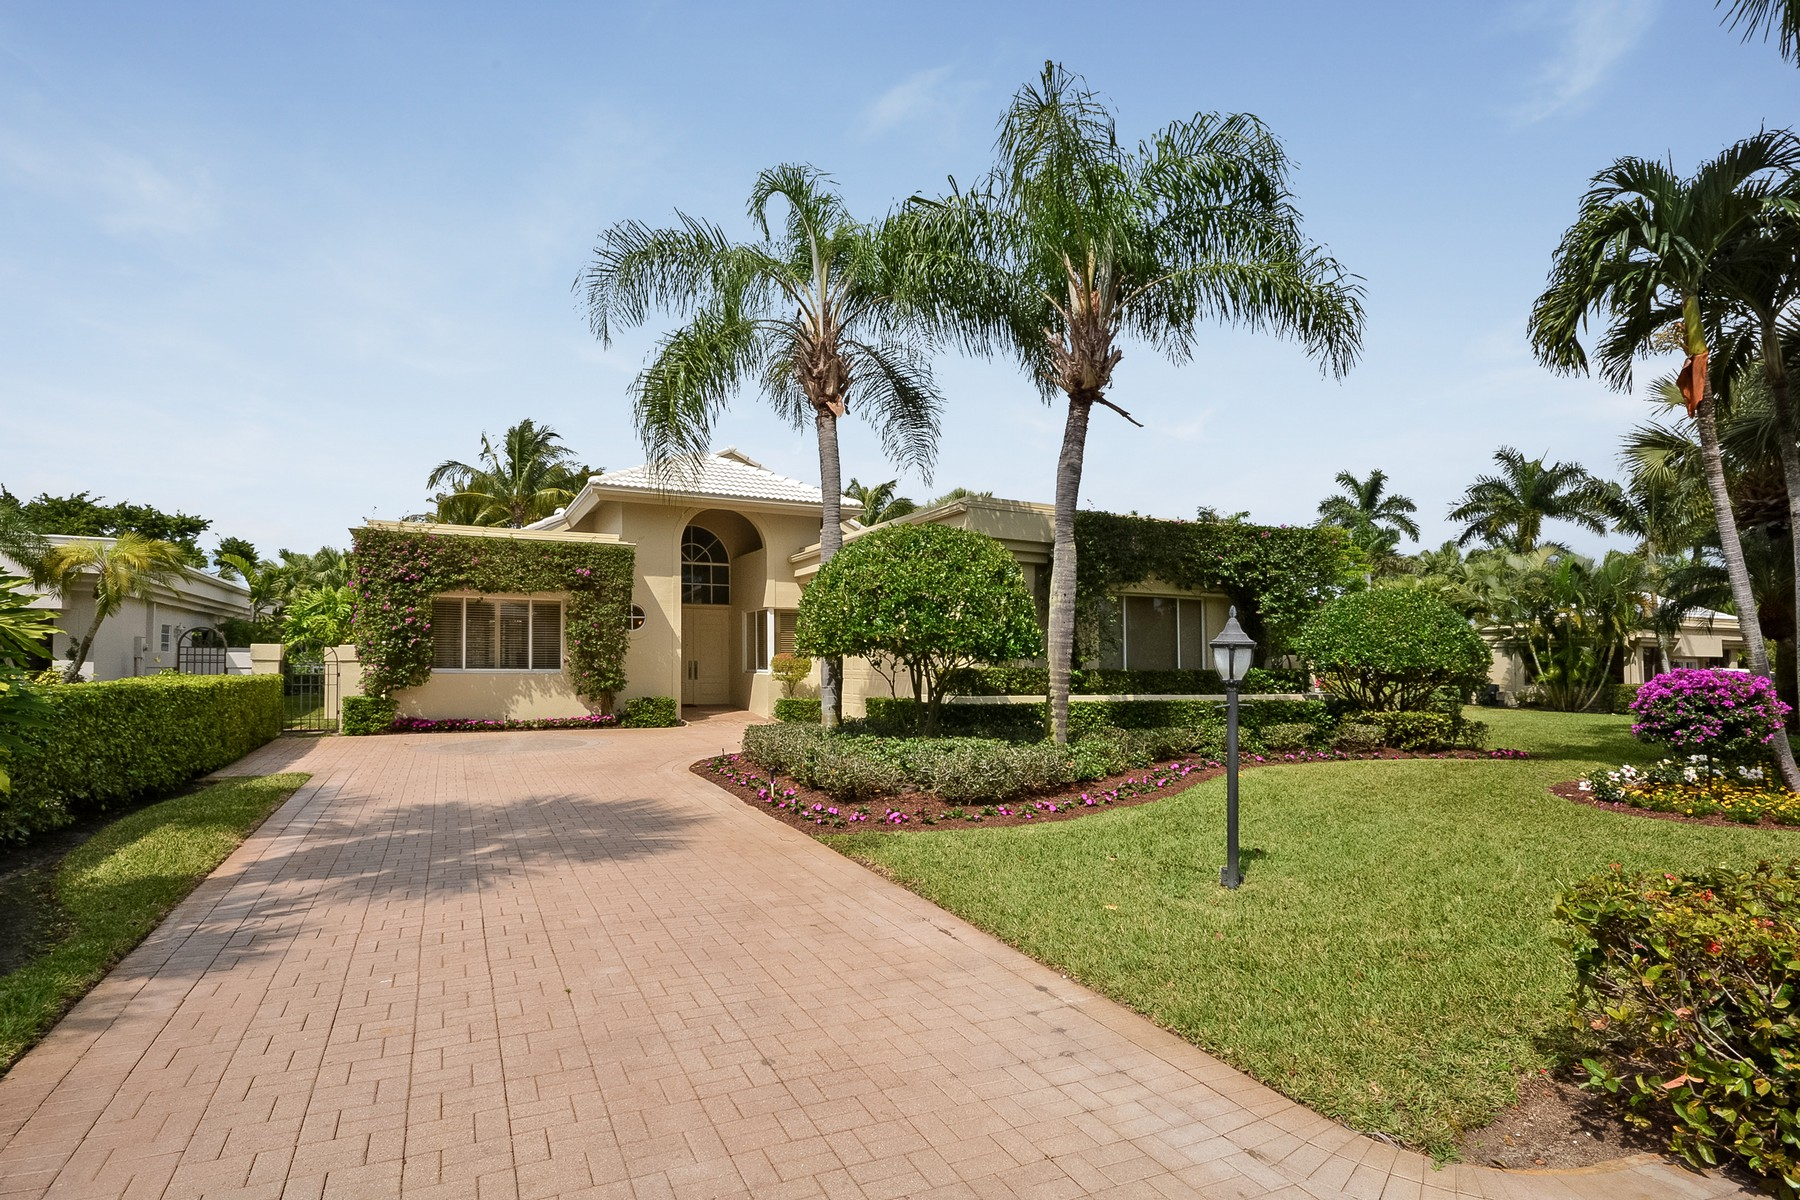 Single Family Home for Sale at 17345 Loch Lomond Way , Boca Raton, FL 33496 17345 Loch Lomond Way Boca Raton, Florida, 33496 United States